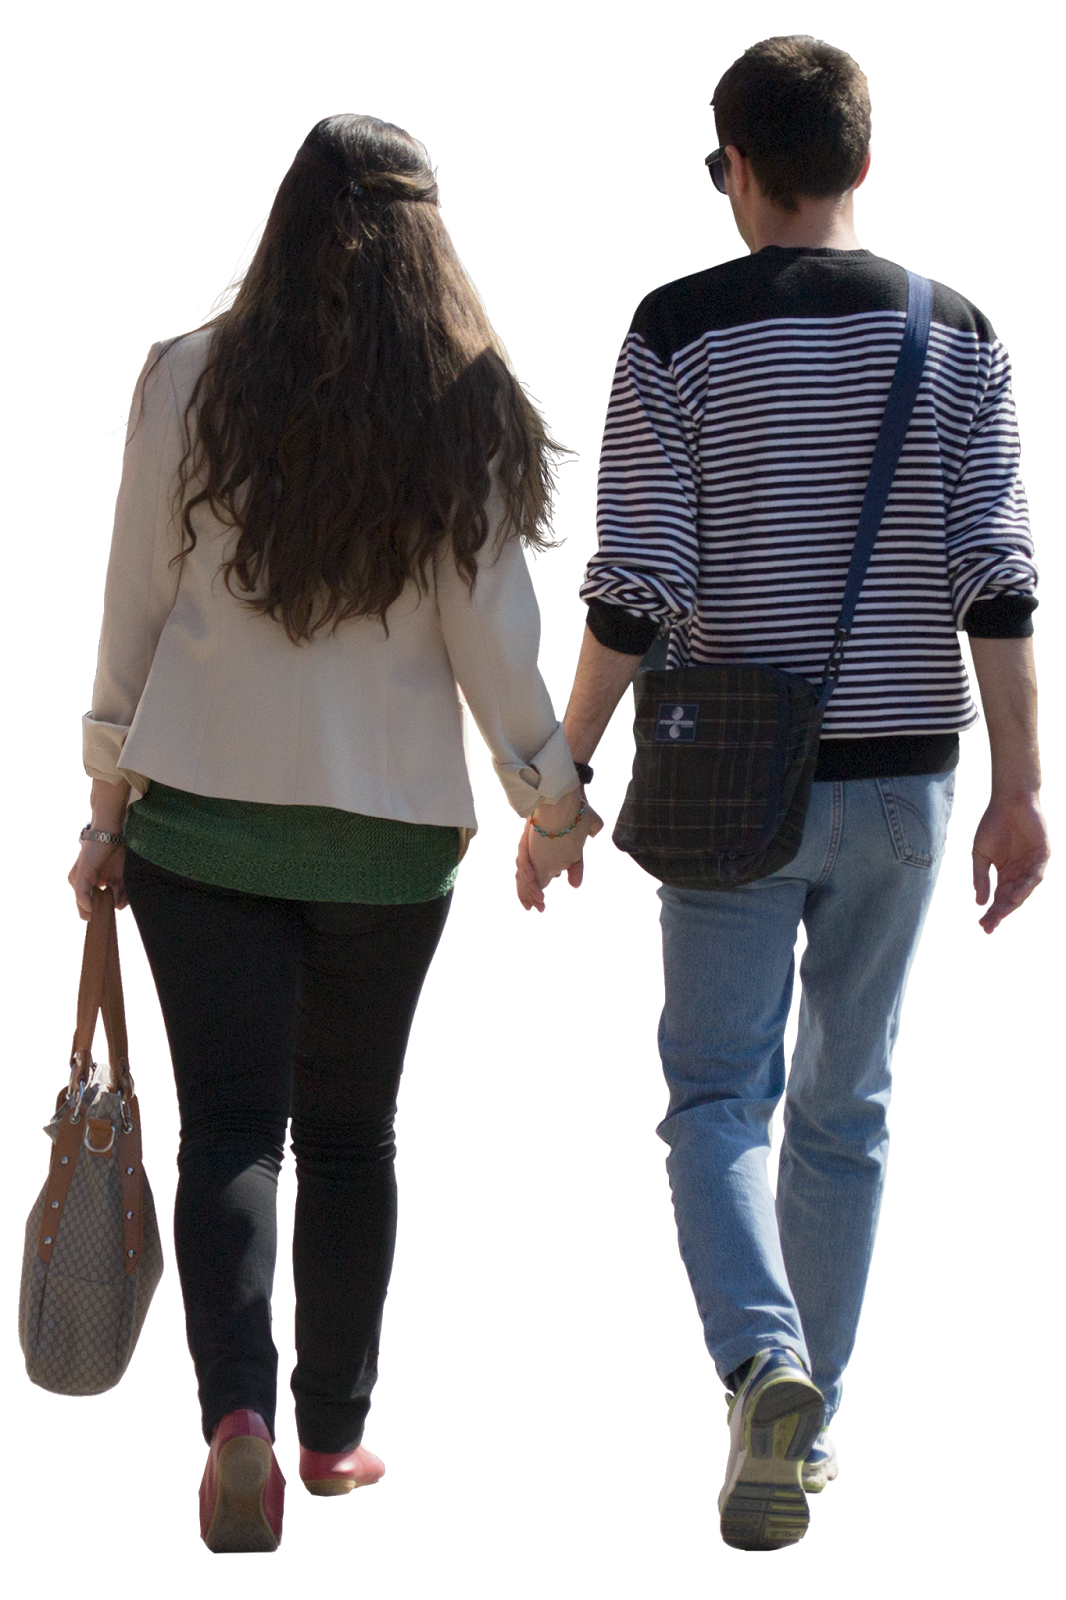 People Walking Png Cut Out People Couple003.